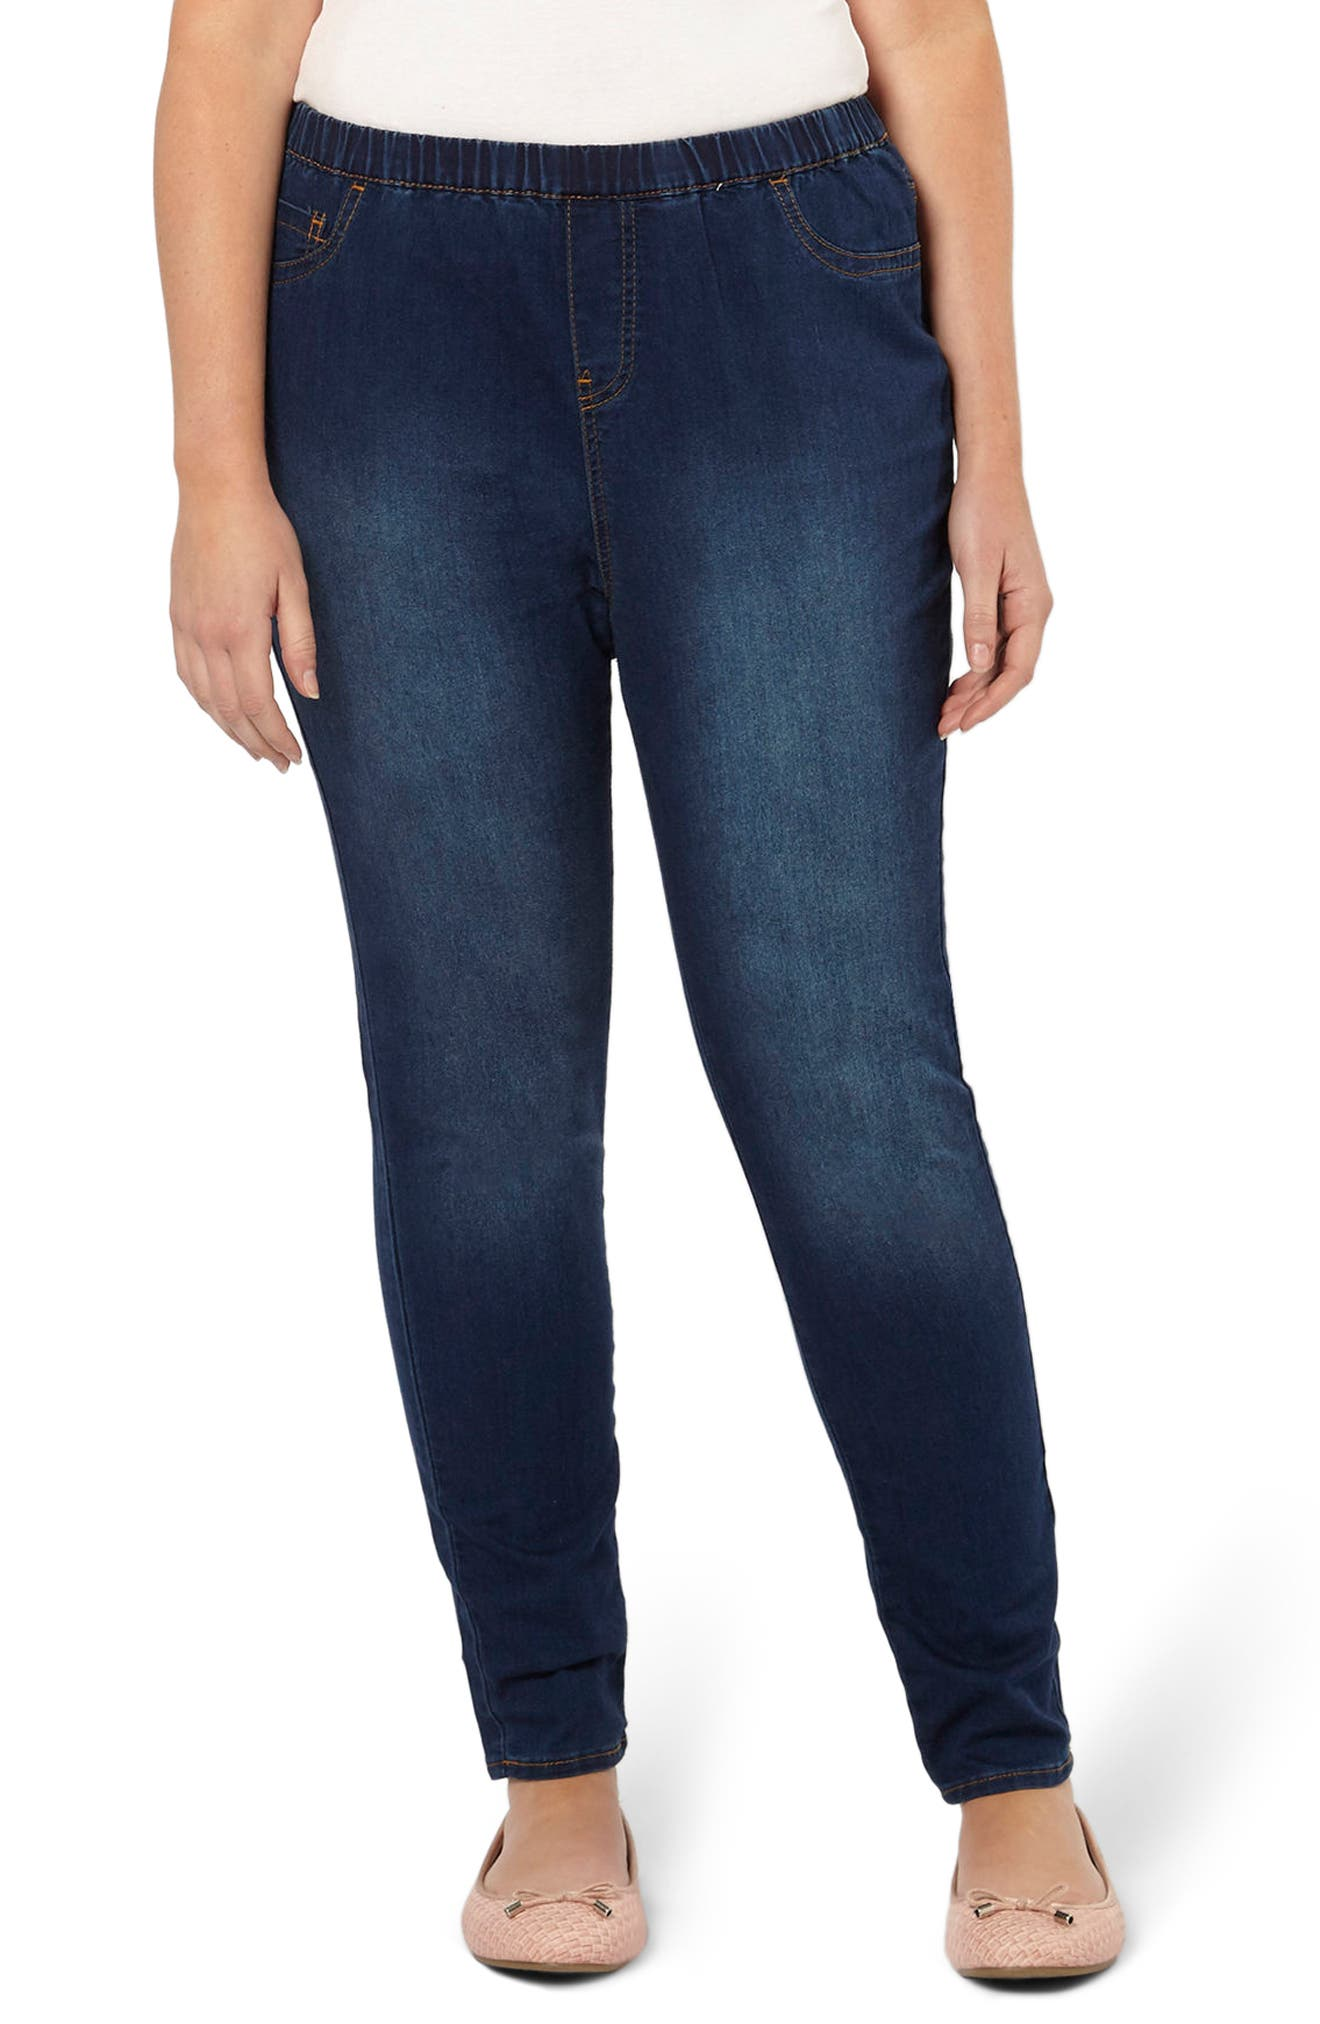 Alternate Image 1 Selected - Evans Denim Leggings (Mid Wash) (Plus Size)